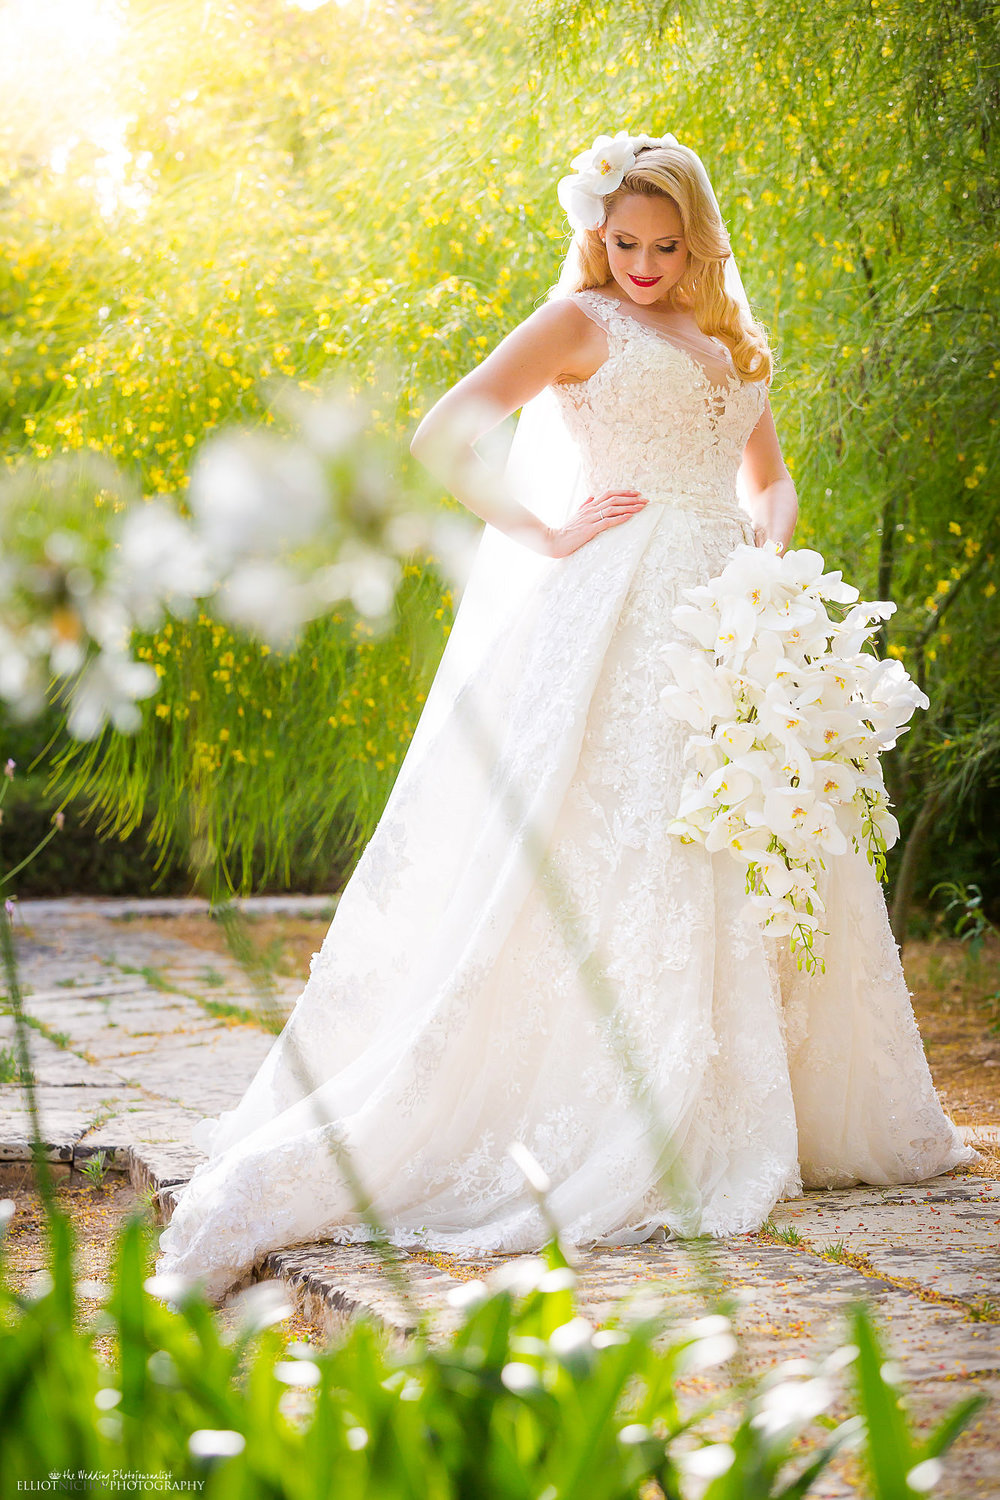 Bride within the grounds of her garden wedding venue. Photo by Elliot Nichol Photography. www.elliotnicholphoto.com